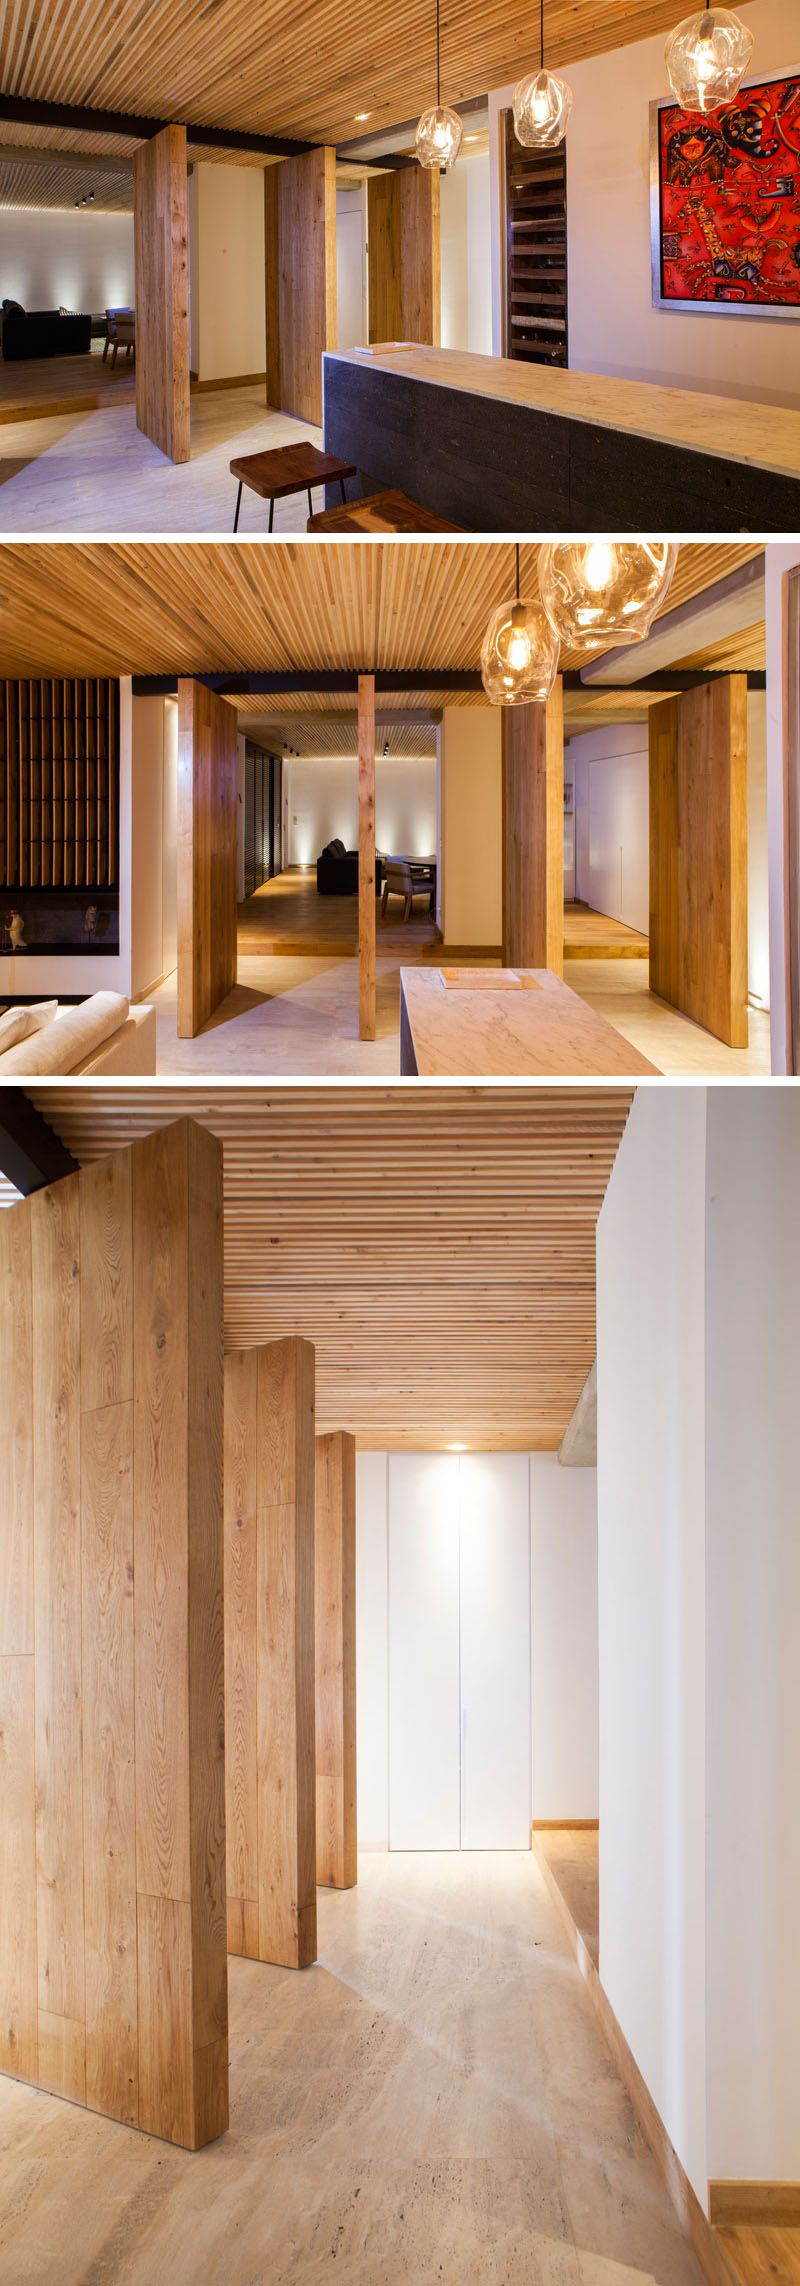 Living Room Wood Paneling Makeover: An Elegant Apartment With A Wood Slat Ceiling